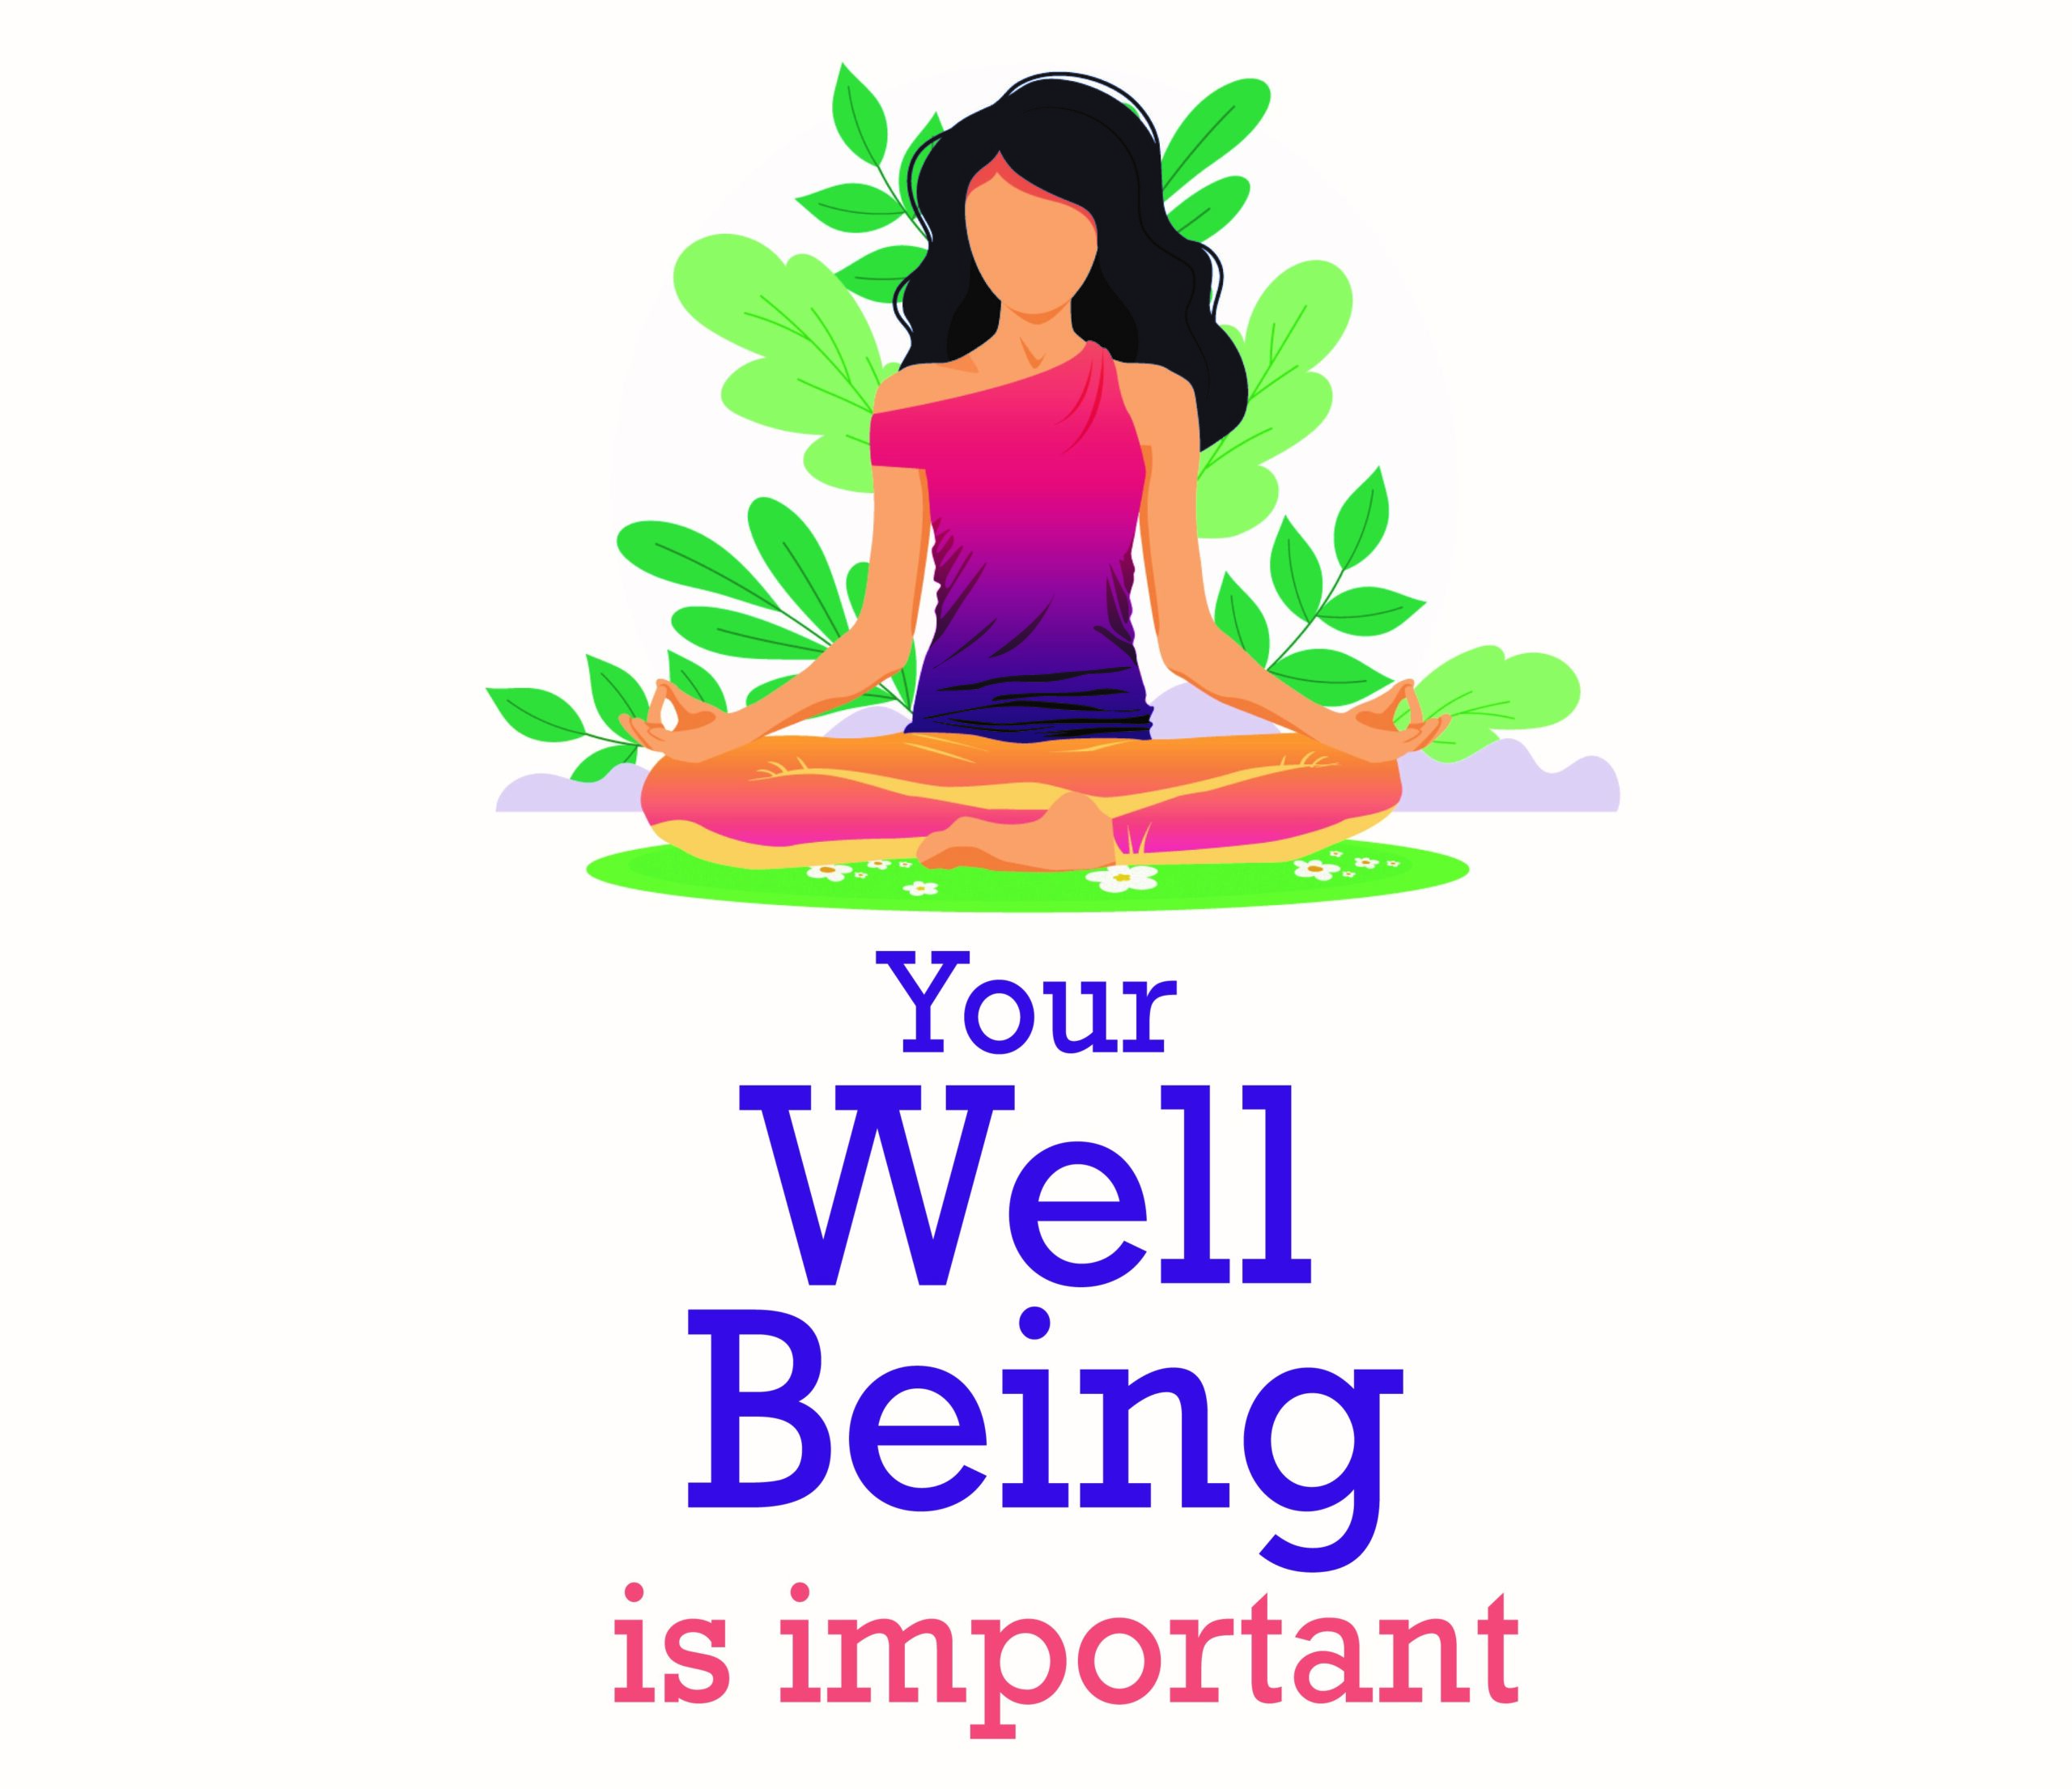 Your Wellbeing Is Important